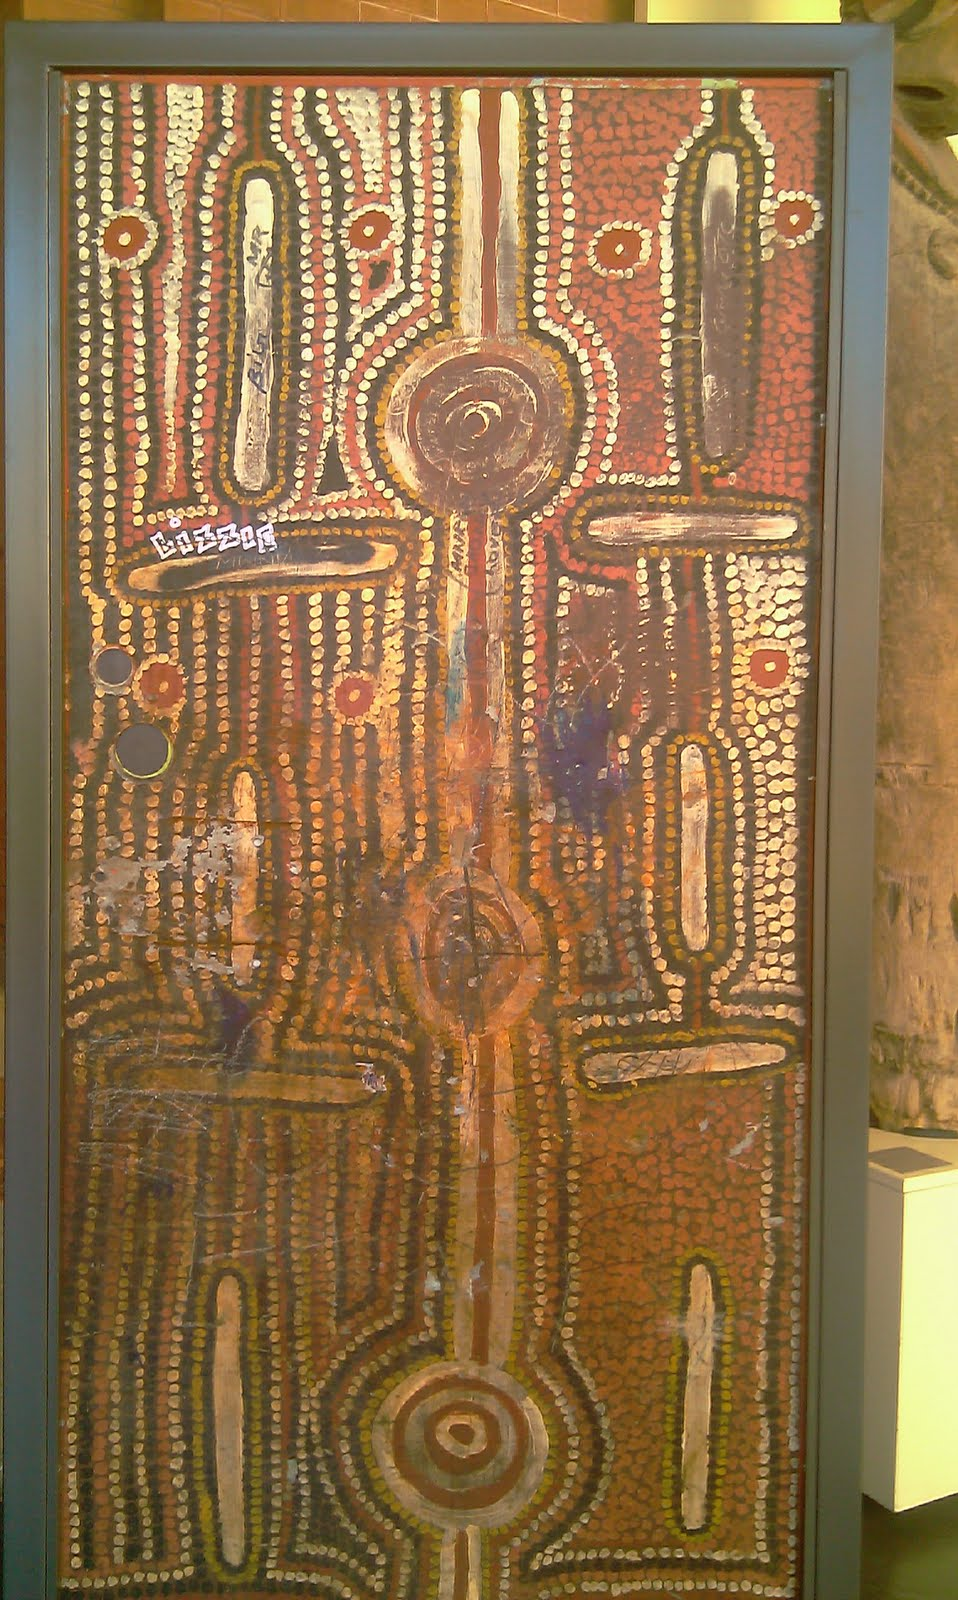 Yuendumu Doors - Great Historical Aboriginal Art & The Monsoon Frog: Yuendumu Doors - Great Historical Aboriginal Art